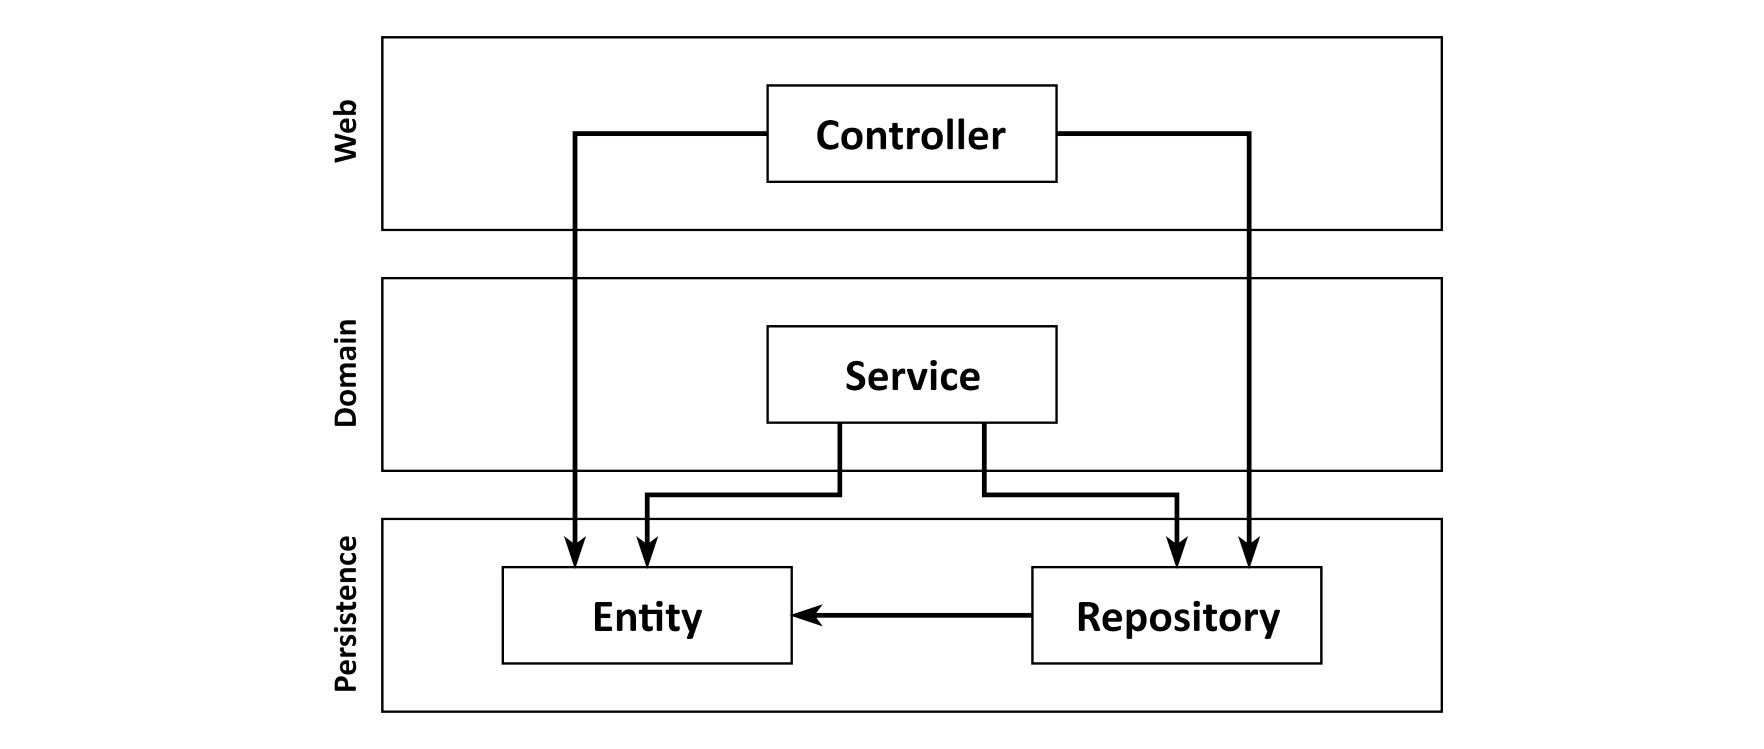 Figure 1.4: Skipping the domain layer tends to scatter domain logic across the code base